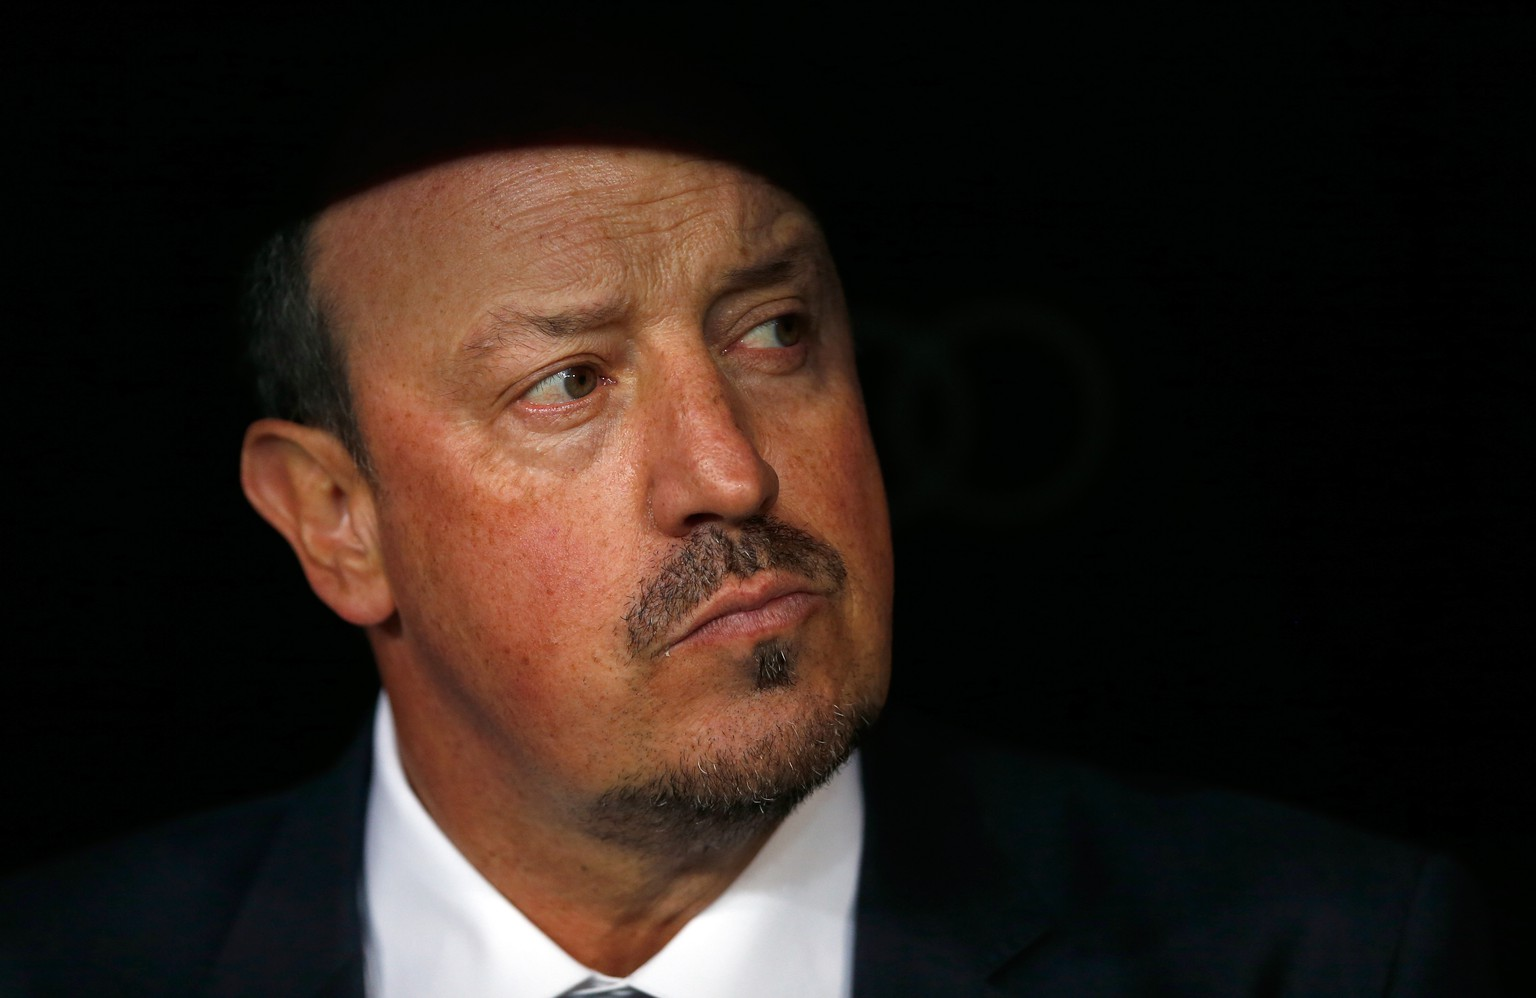 Real Madrid's head coach Rafael Benitez waits for the start of the first clasico of the season between Real Madrid and Barcelona at the Santiago Bernabeu stadium in Madrid, Spain, Saturday, Nov. 21, 2015. (AP Photo/Daniel Ochoa de Olza)